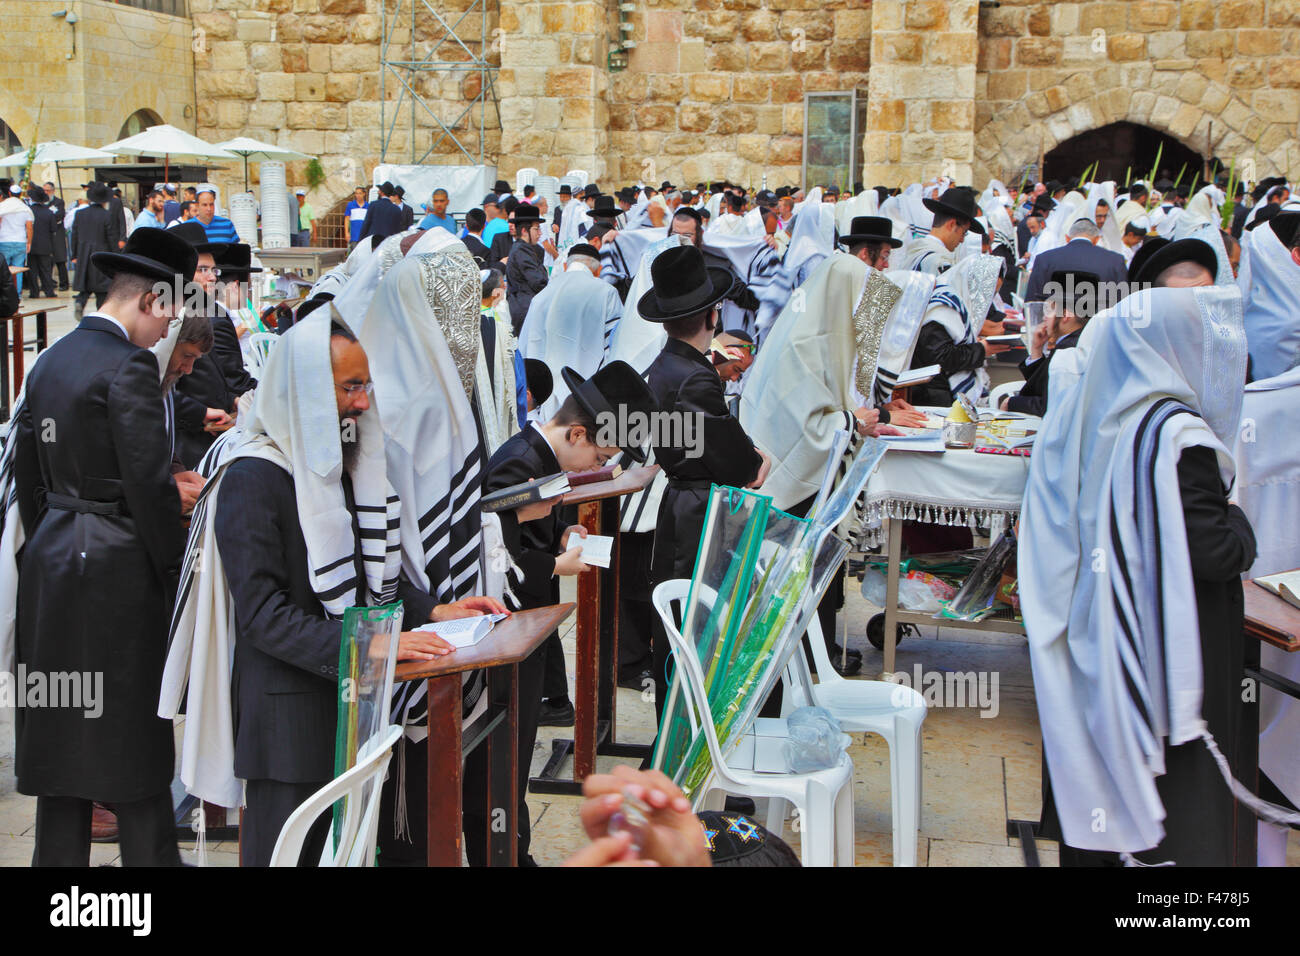 Many religious Jews in tallit - Stock Image